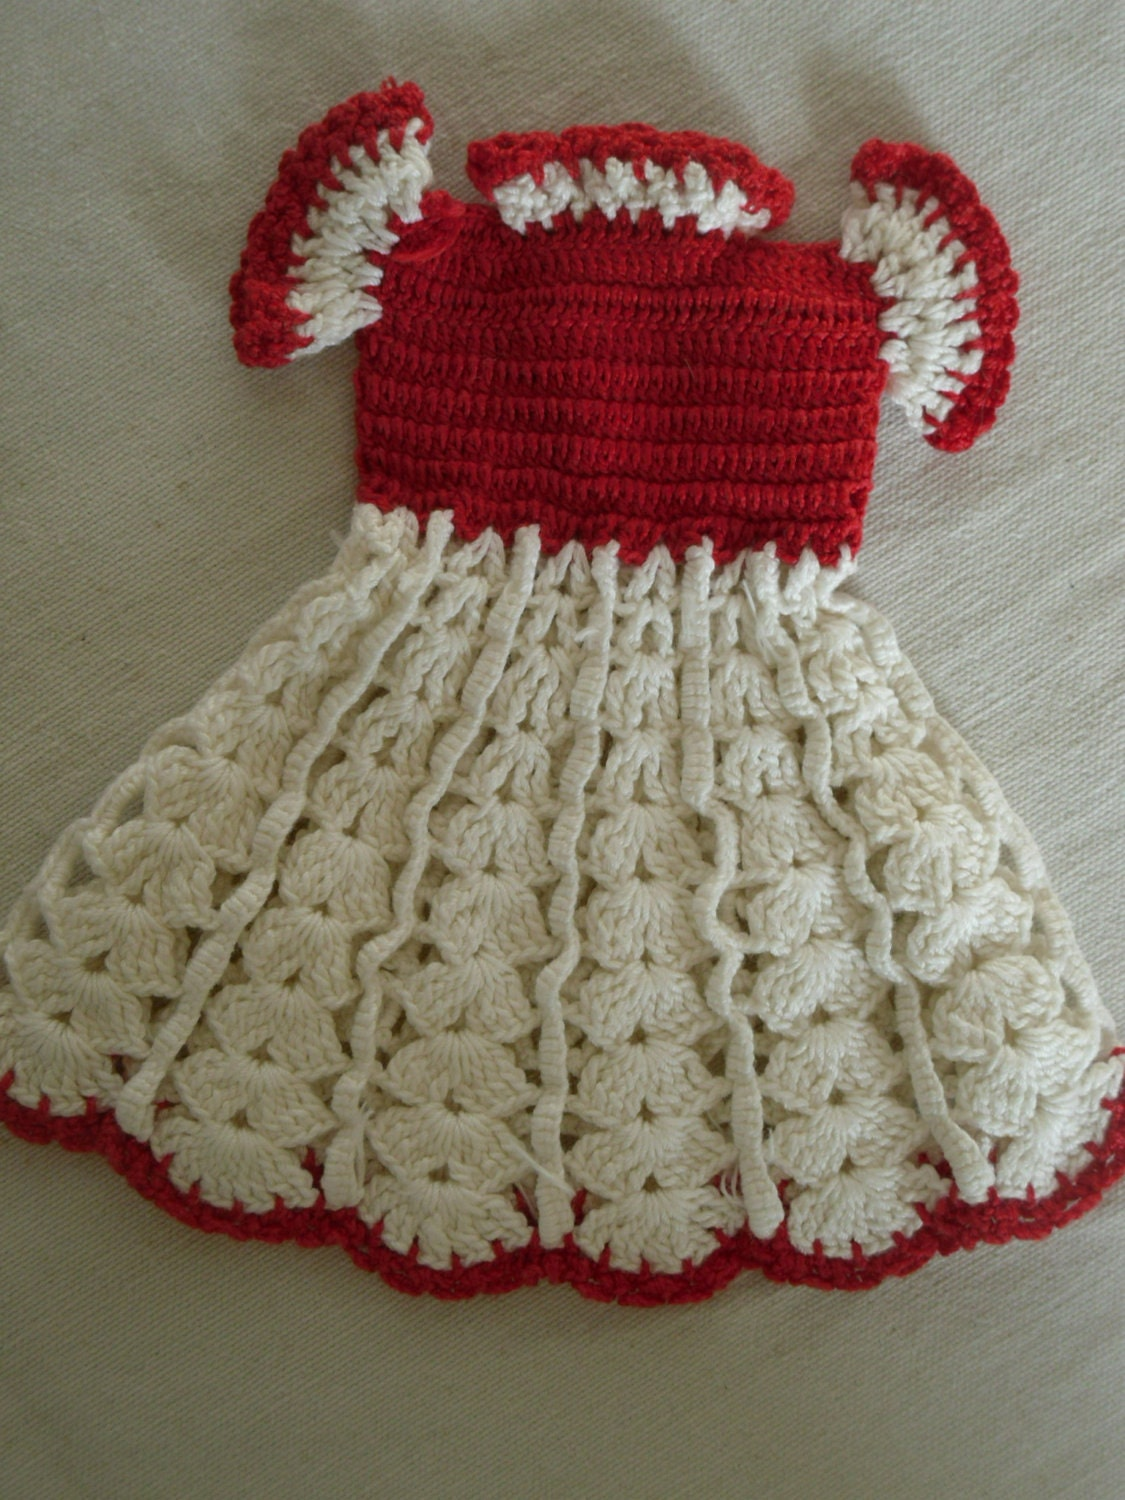 Crocheting Doll Clothes : How to Make a Crocheted Dress for Dolls eHow.com